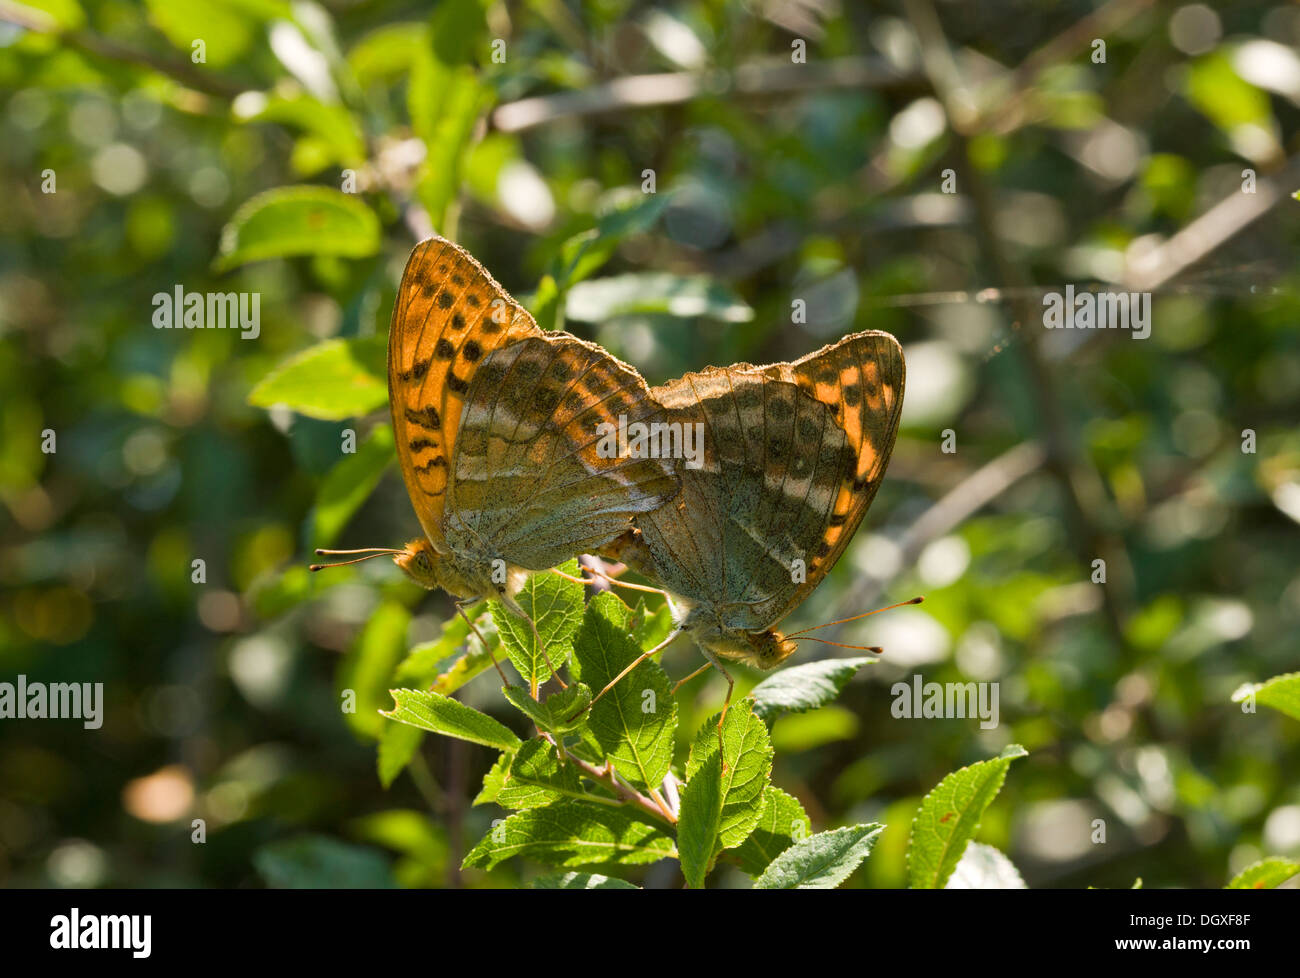 Silver-washed fritillary butterfly, Argynnis paphia, mating pair; Dorset. - Stock Image